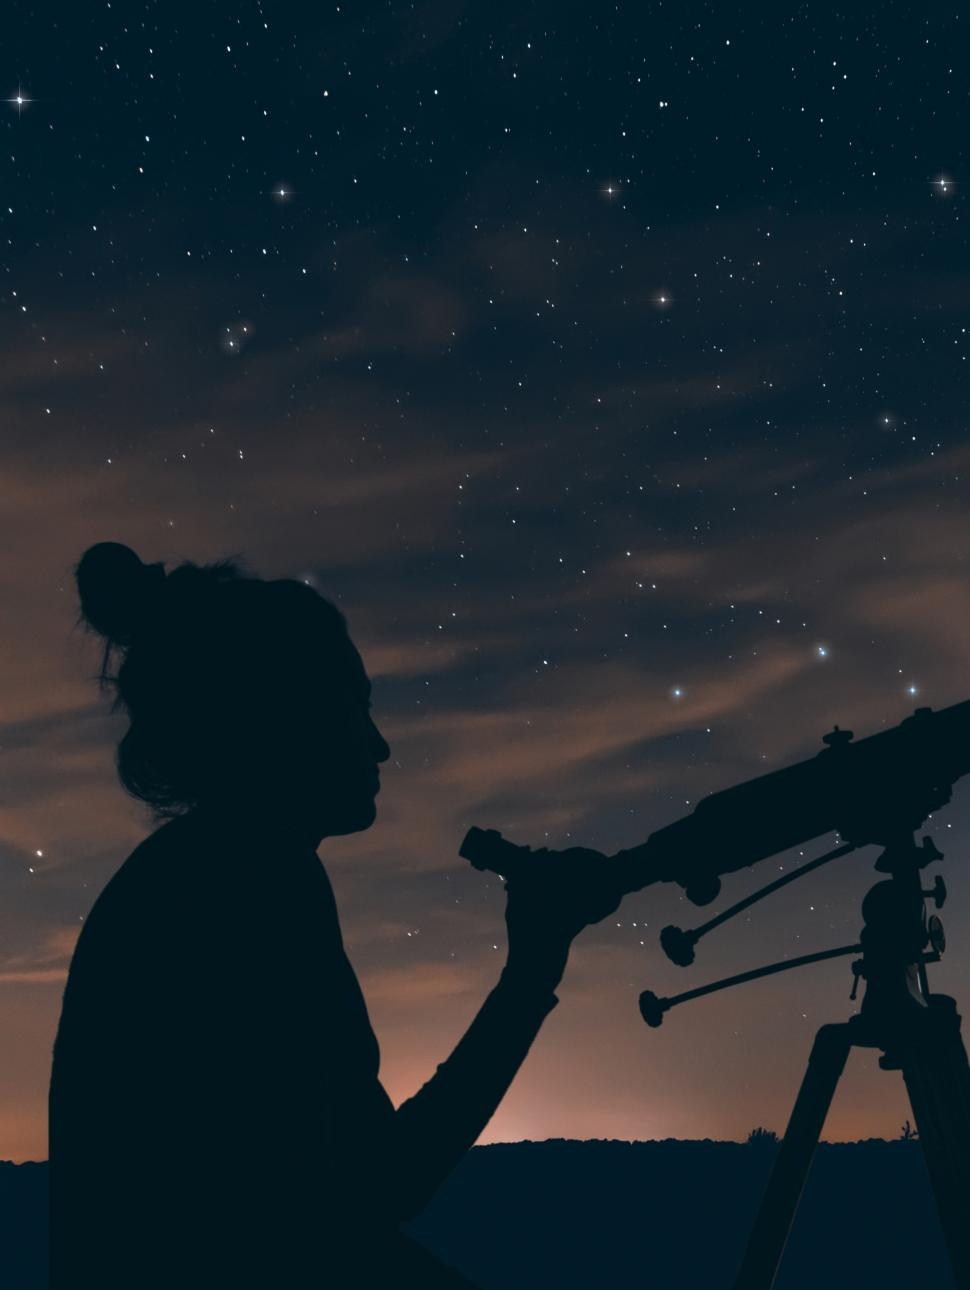 A person holding a telescope is silhouetted against an evening sky